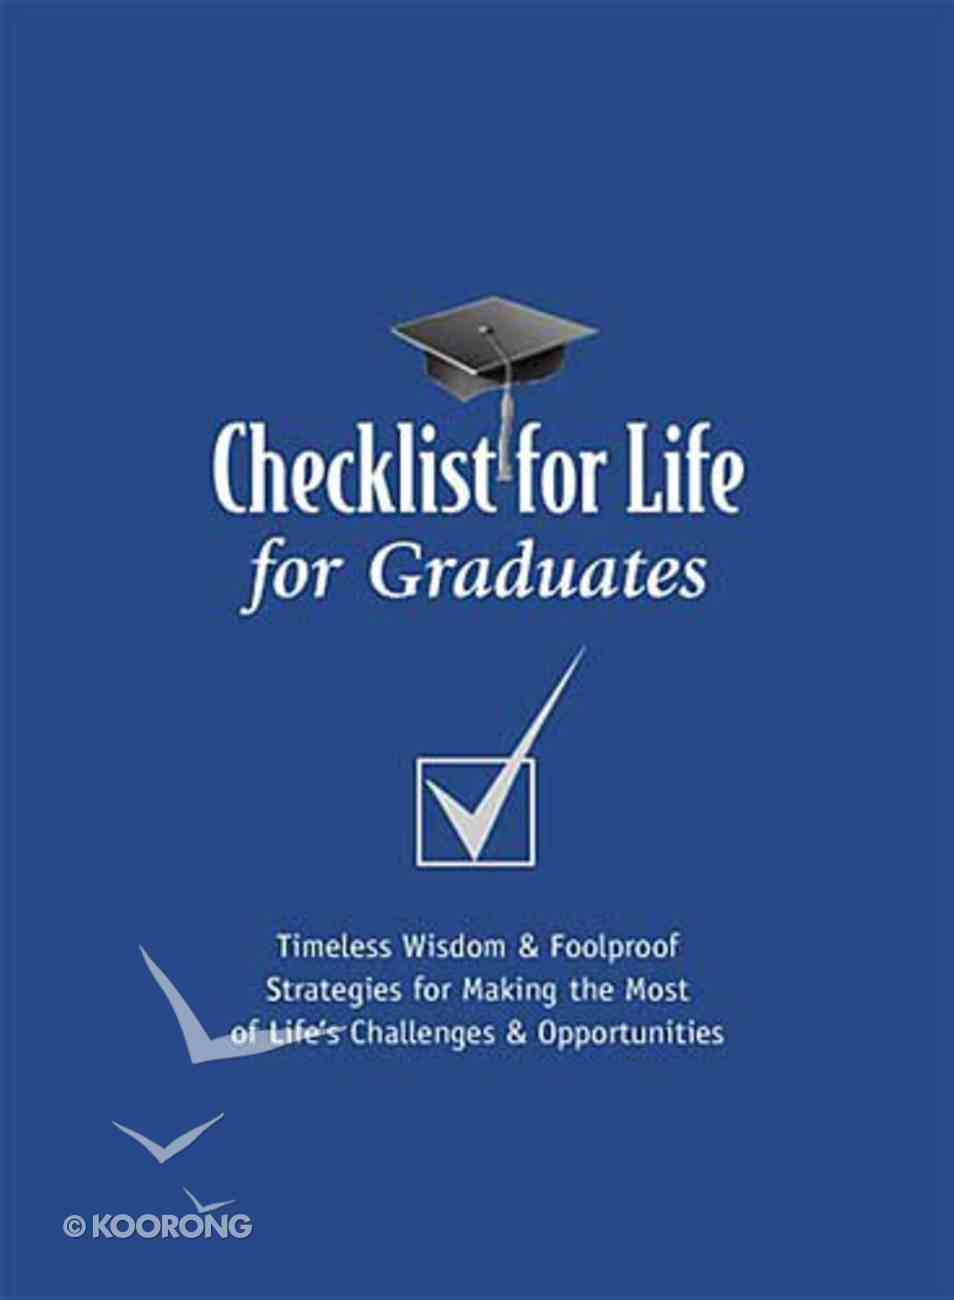 For Graduates (Checklist For Life Series) Paperback